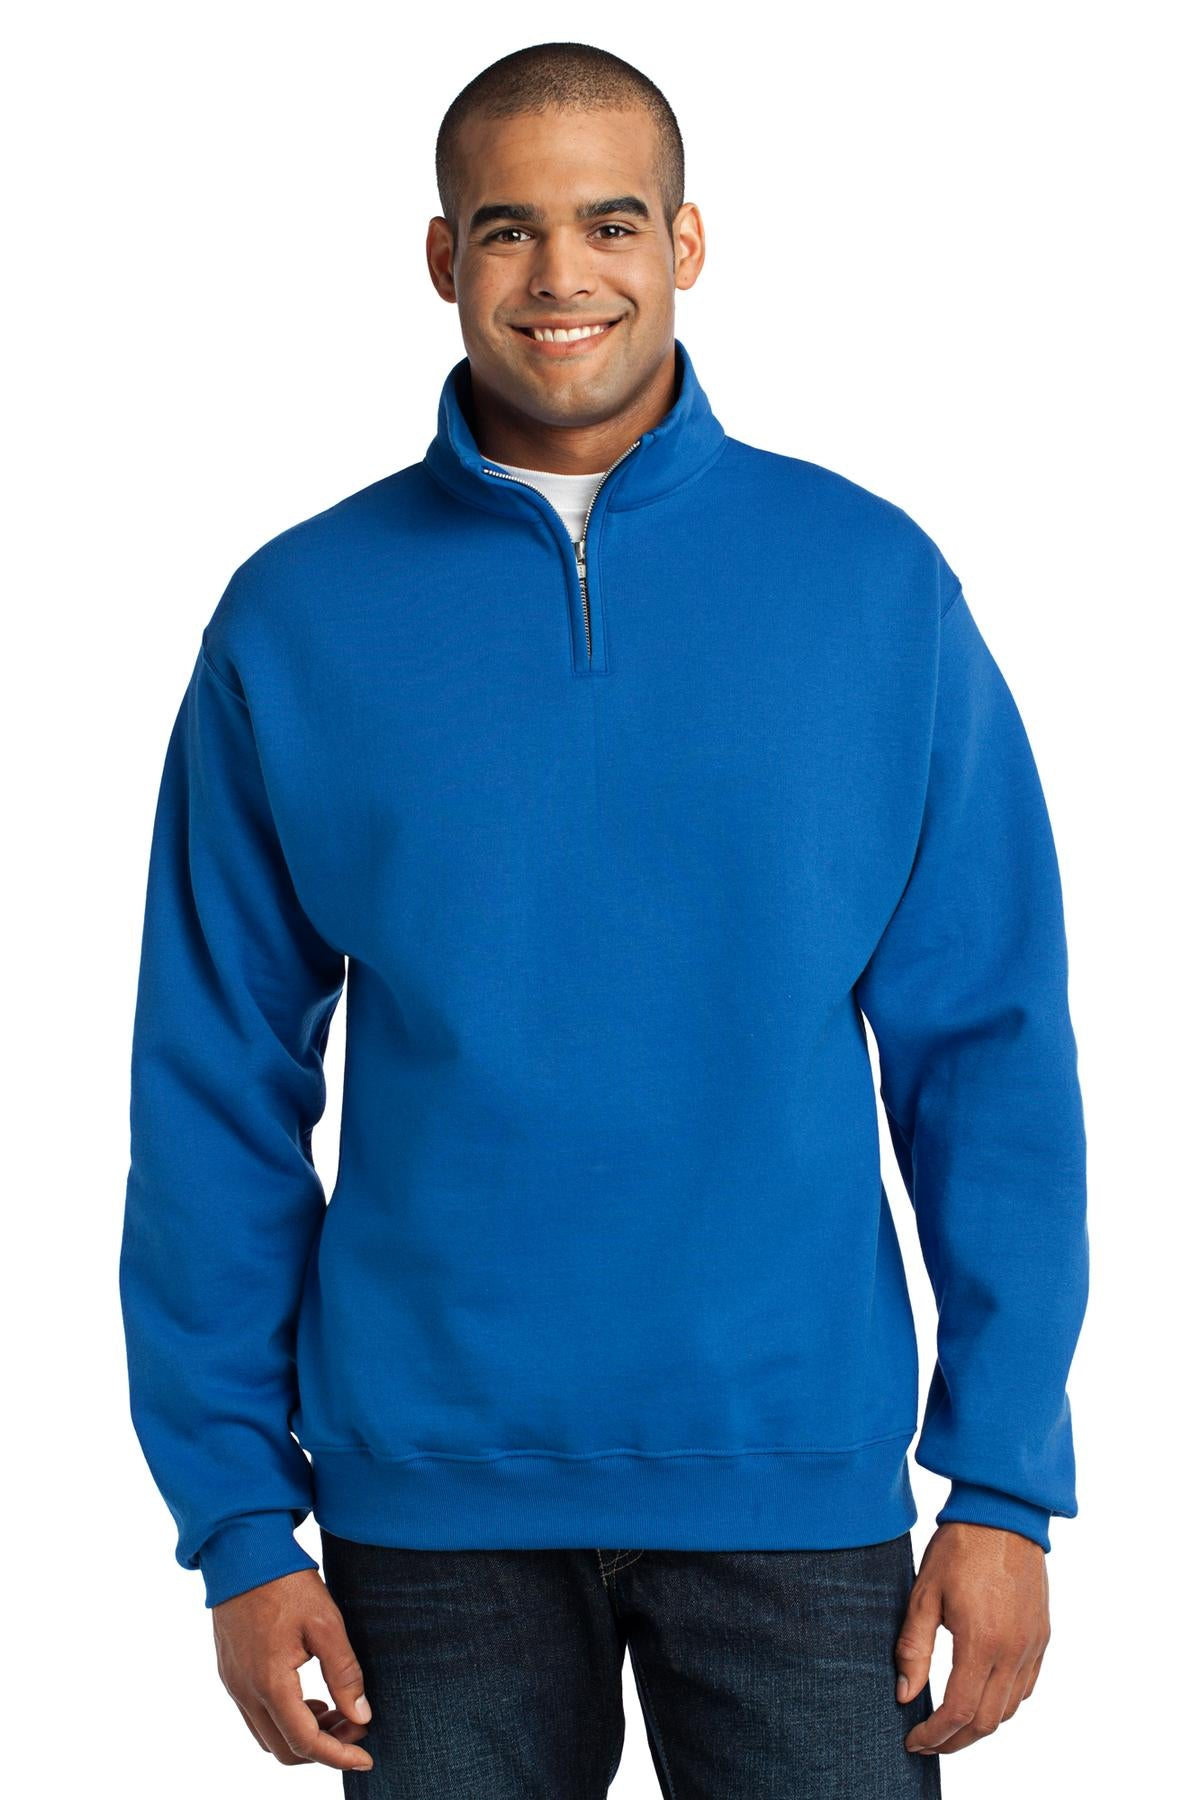 JERZEES® - NuBlend® 1/4-Zip Cadet Collar Sweatshirt. 995M - Aspire Zone